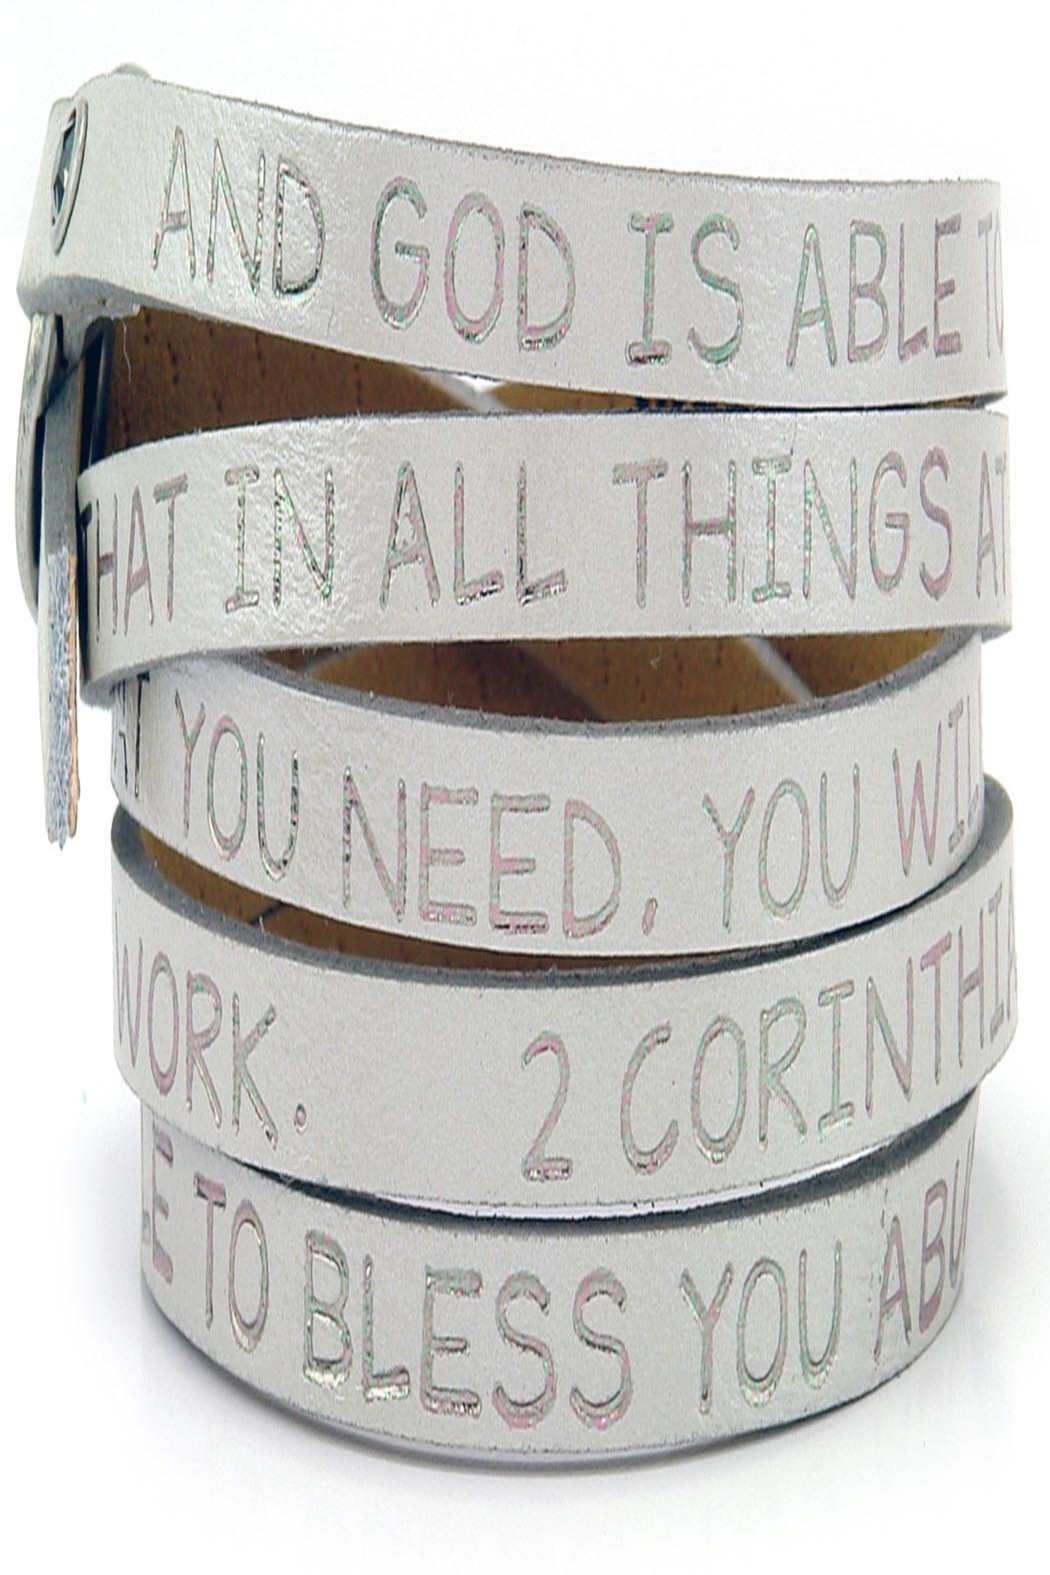 best inspirational multiple images sisters bracelets pinterest soul mindfuelnest on finishes bracelet bar